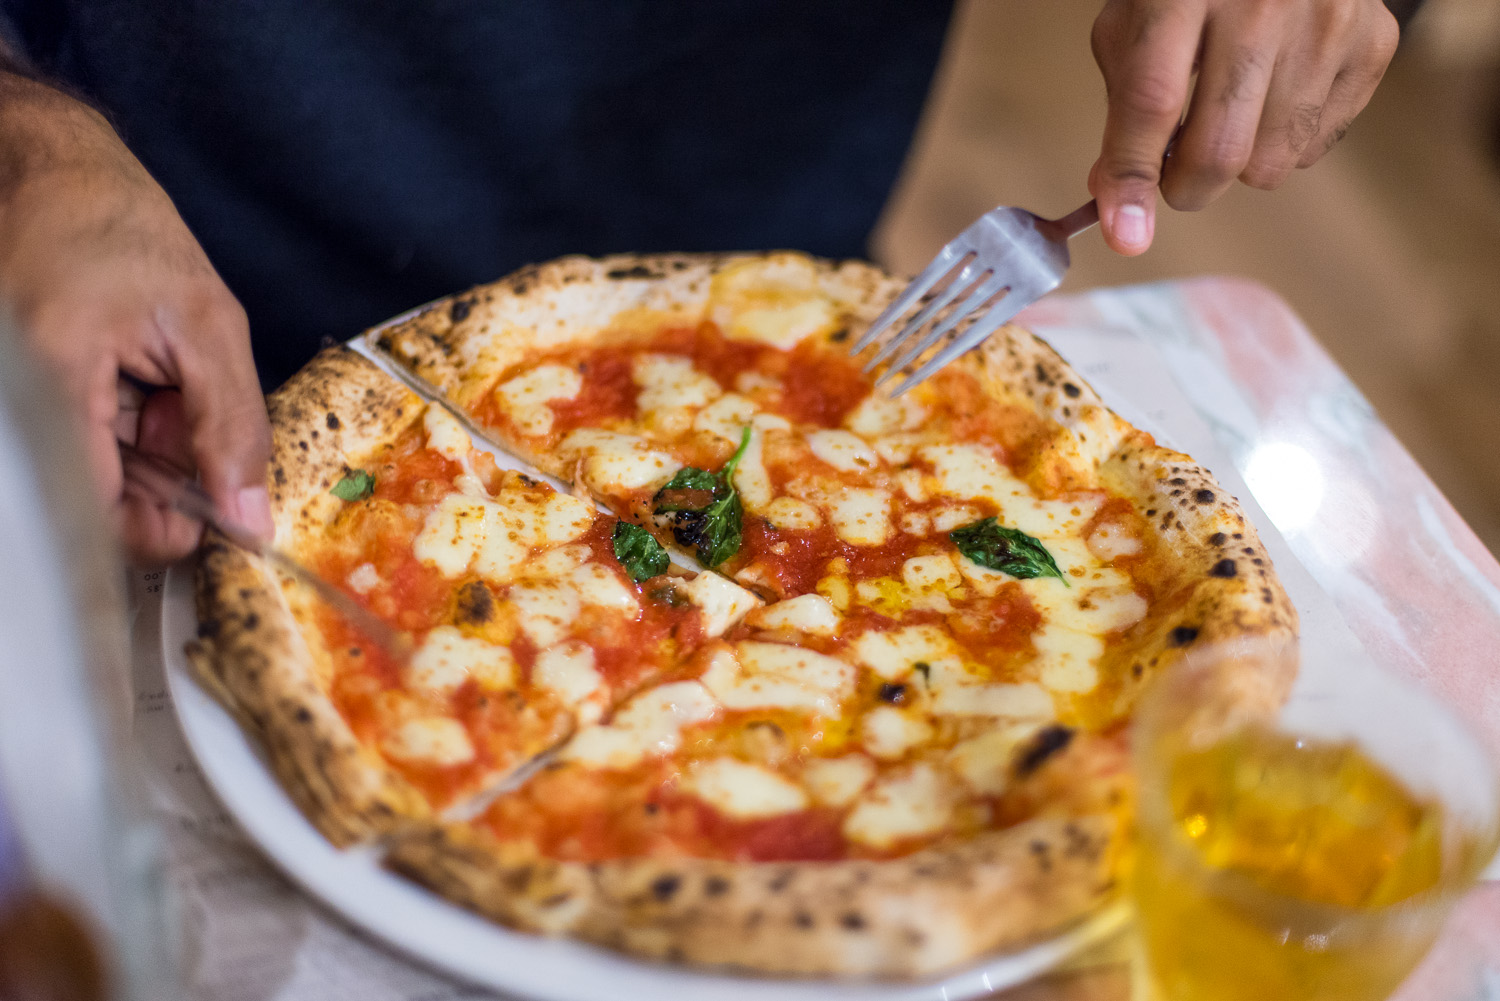 Pizza at Franco Manca in East Dulwich, London